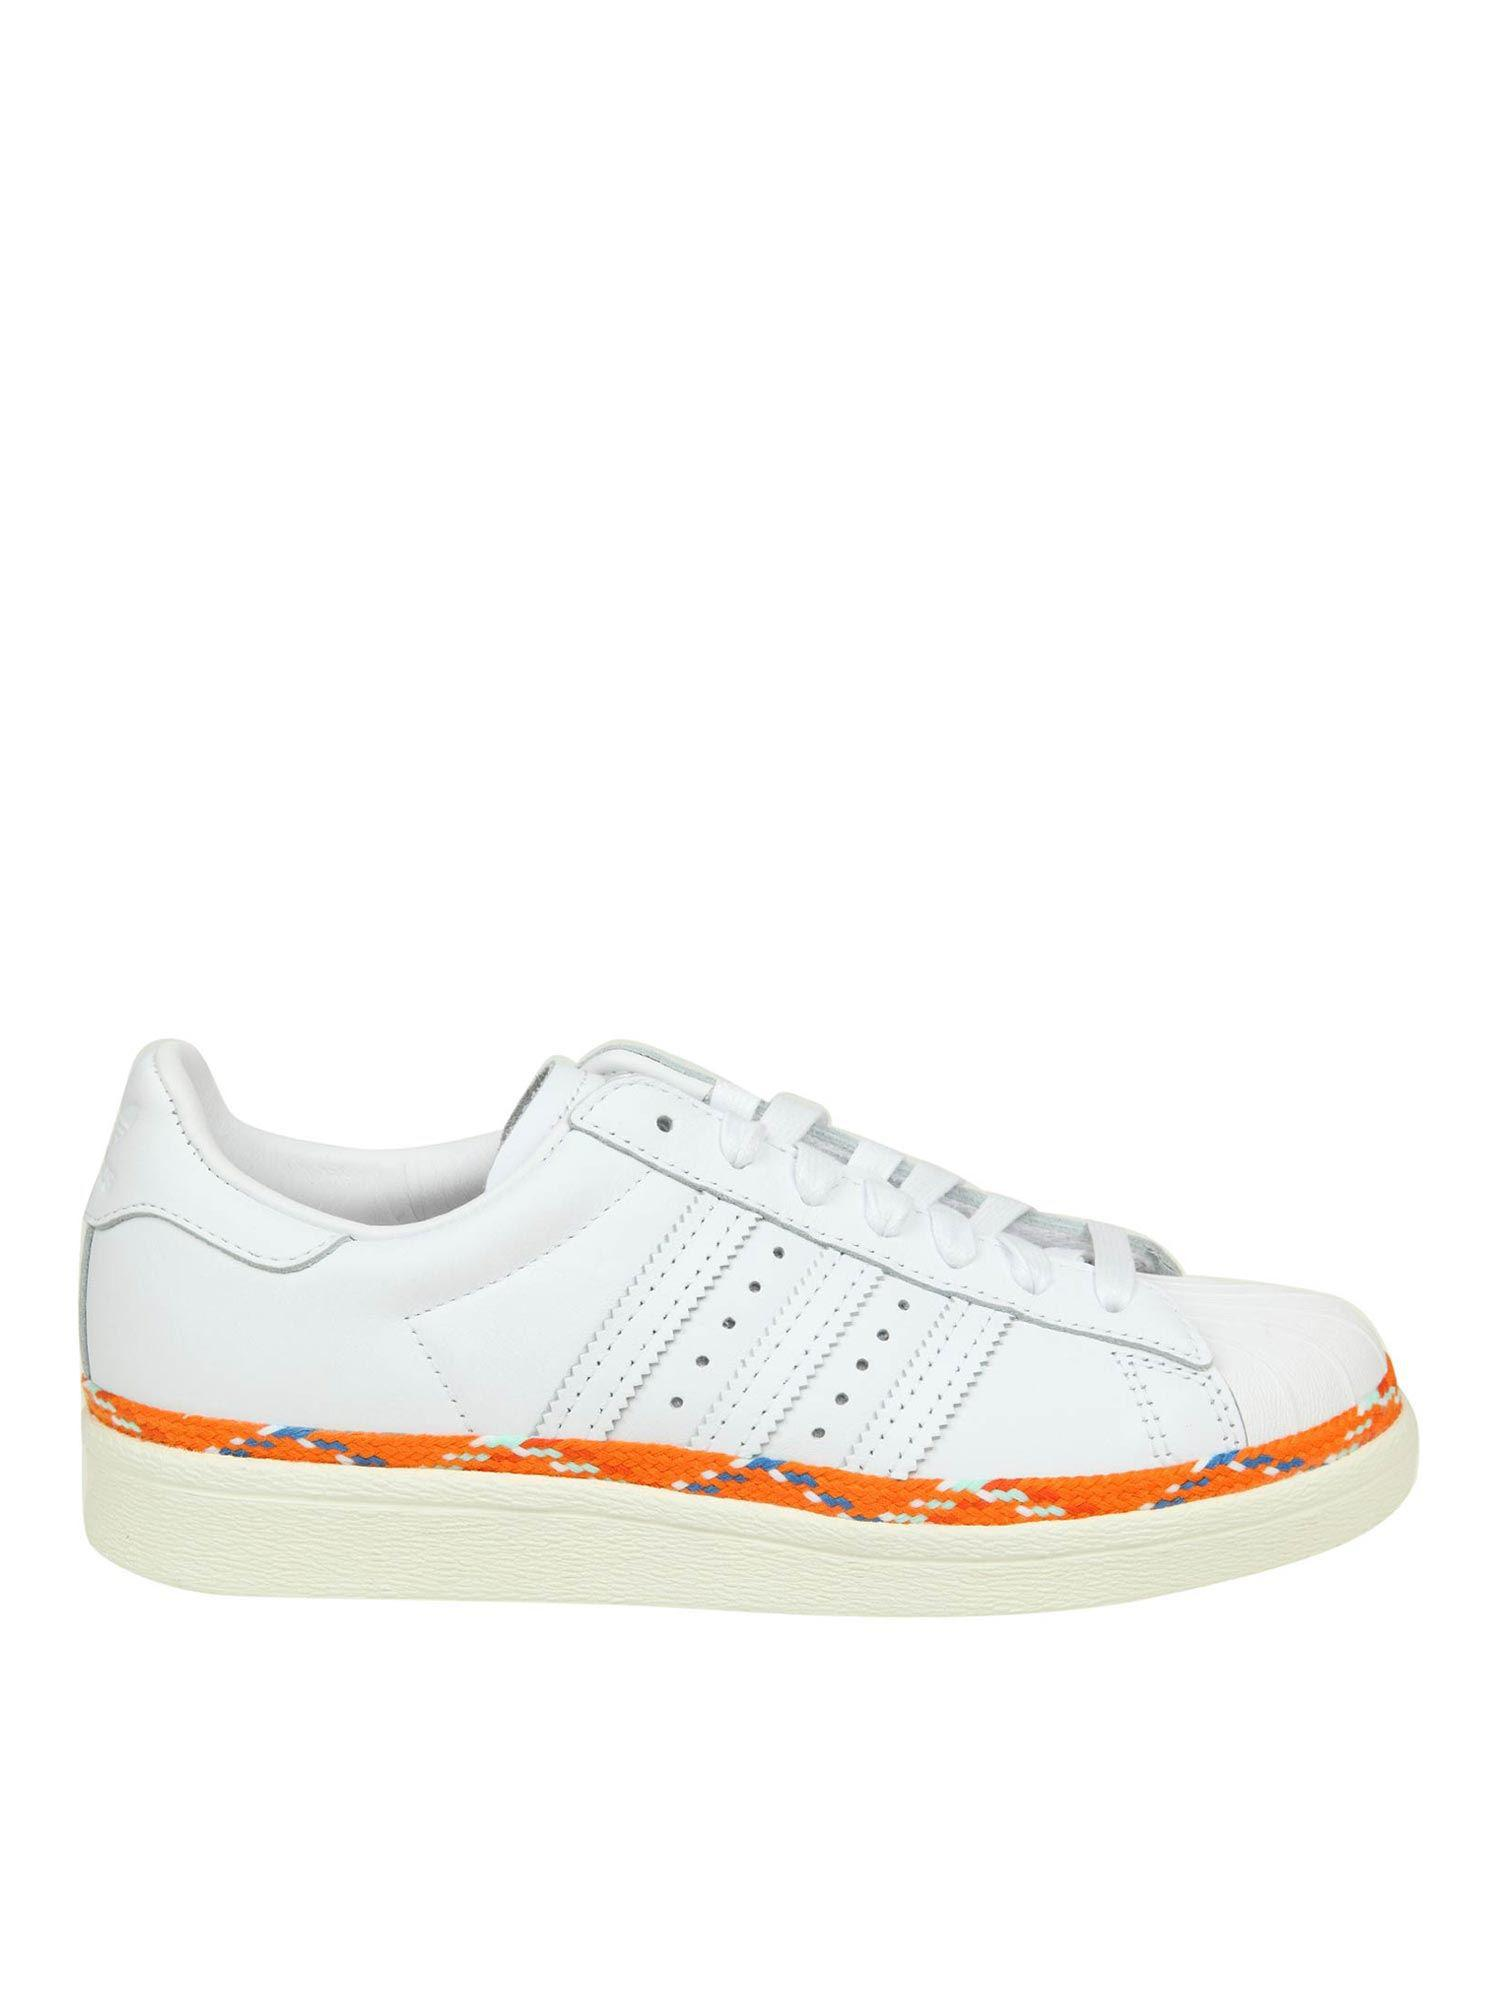 5f359bfc4ae Lyst - adidas Originals Superstar 80s New Bold Sneakers in White